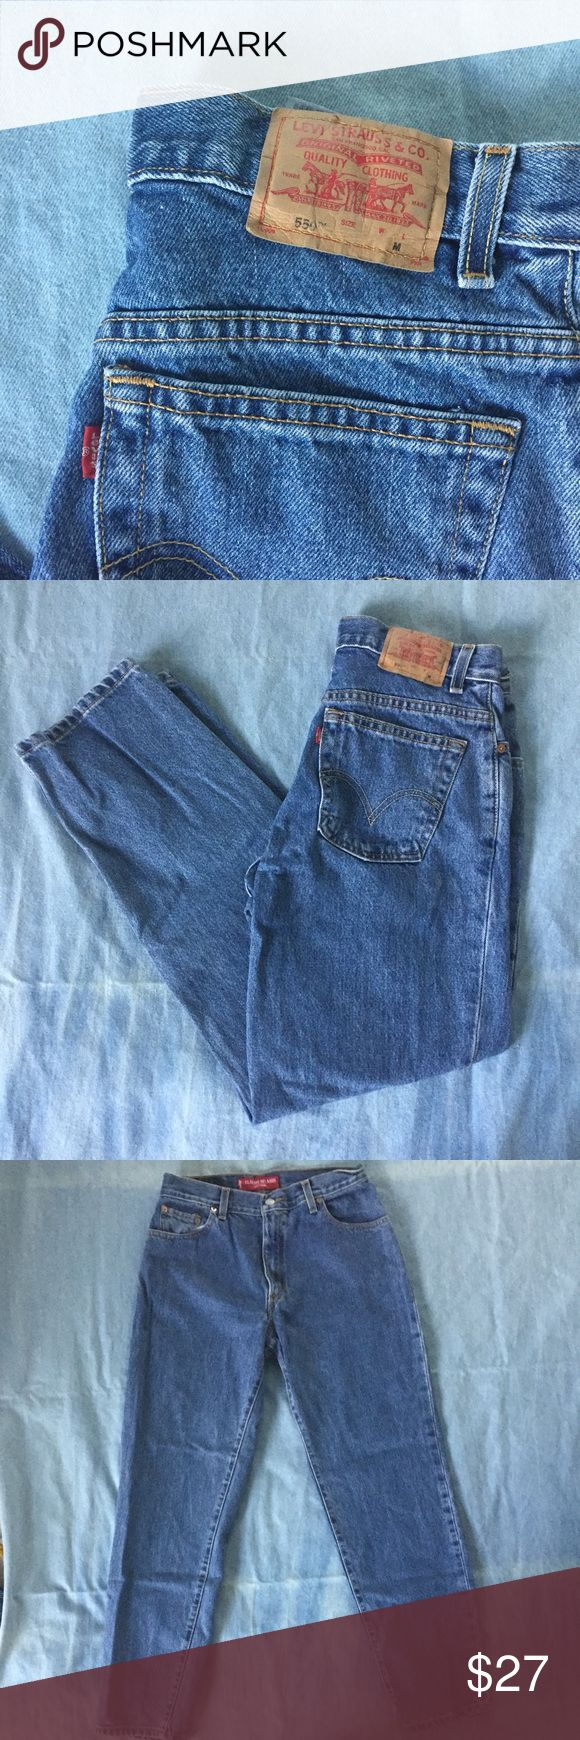 """Vintage Levi's 550 Jeans These jeans have normal wear but are in good condition. These are a tag size 10 but fit as a modern day 6. Be sure to use the measurements to make sure these are a fit for you.                                Measurements:                                                               28"""" Waist 7"""" Leg Opening 29"""" Inseam 39.5"""" Outseam 8.5"""" Rise Levi's Jeans Boot Cut"""